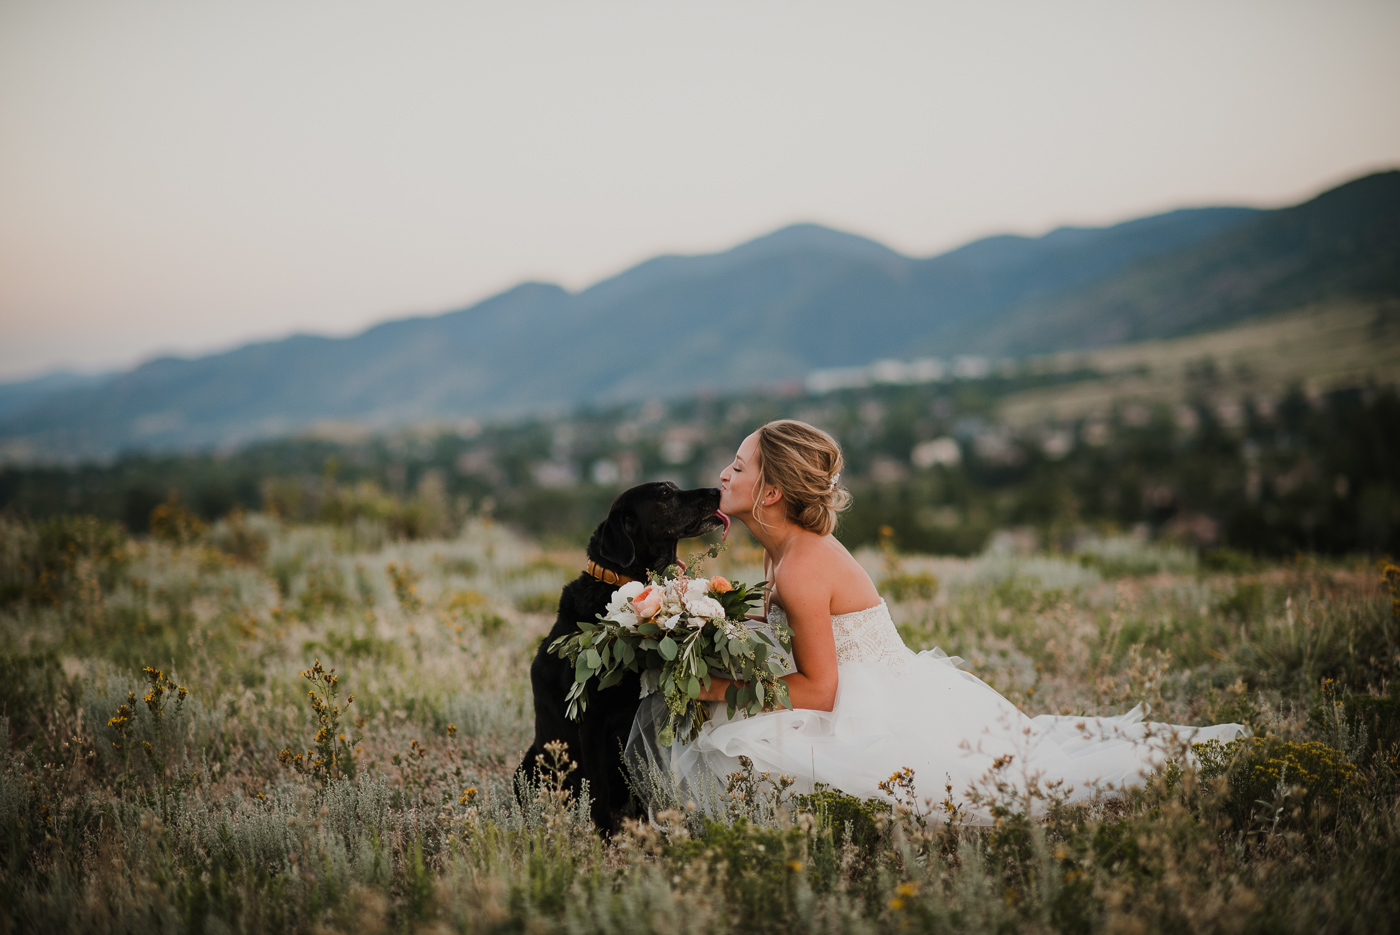 PHOCO2018TopPhotos_wedding_portrait-12.jpg